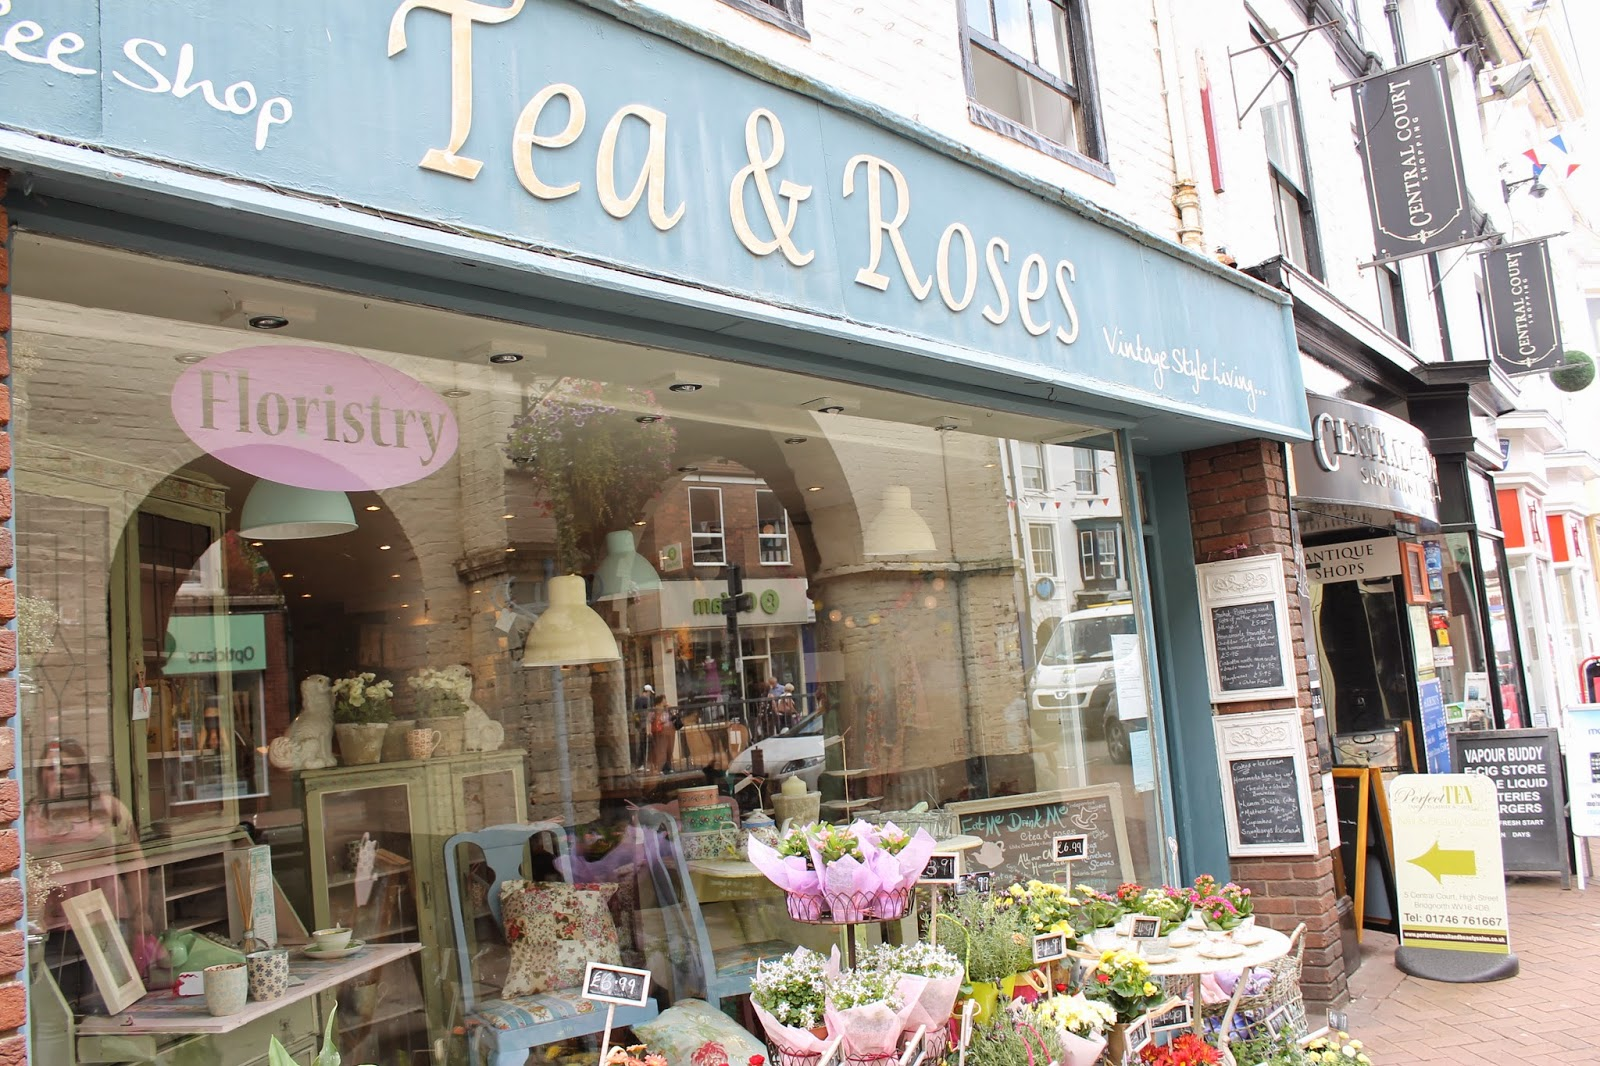 Bridgnorth Tea & Roses Shop